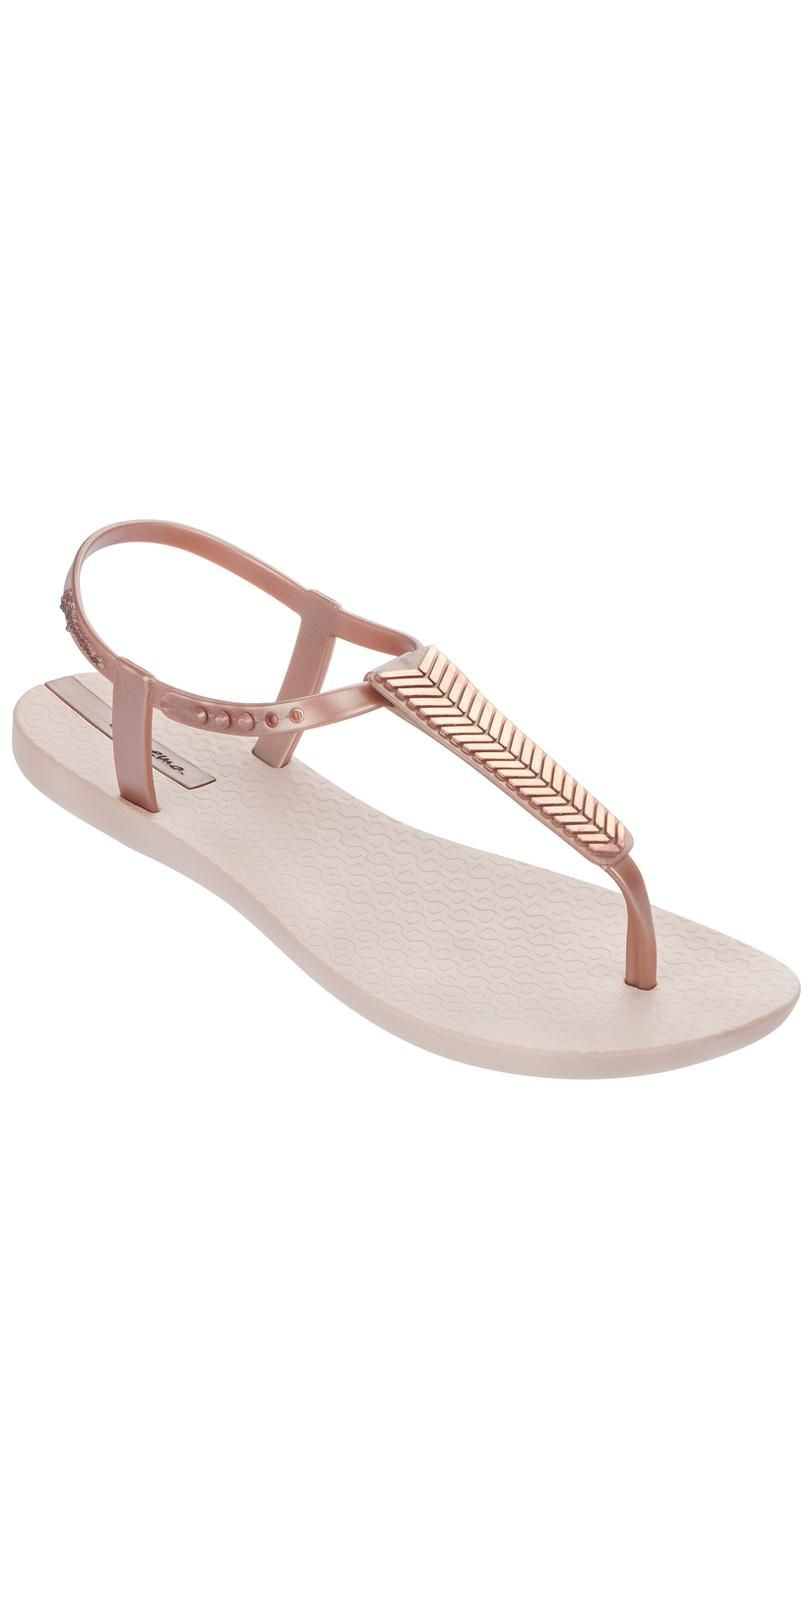 #iPanema 2015 Eva Rose Gold #Sandals #southbeachSwimsuits